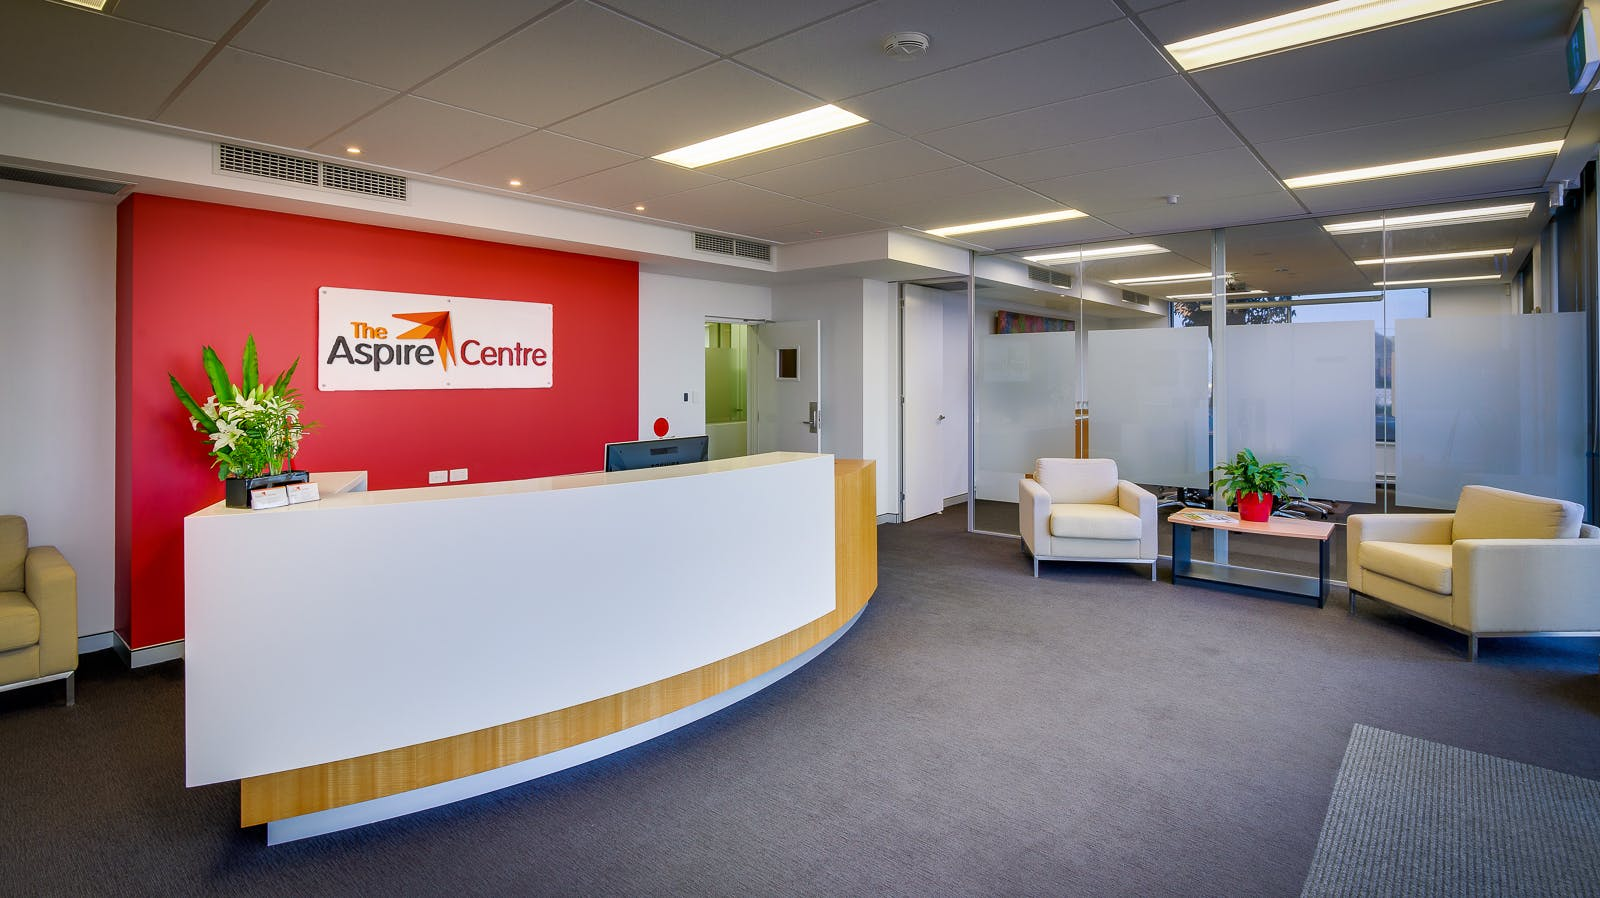 Office 10, serviced office at The Aspire Centre, image 8